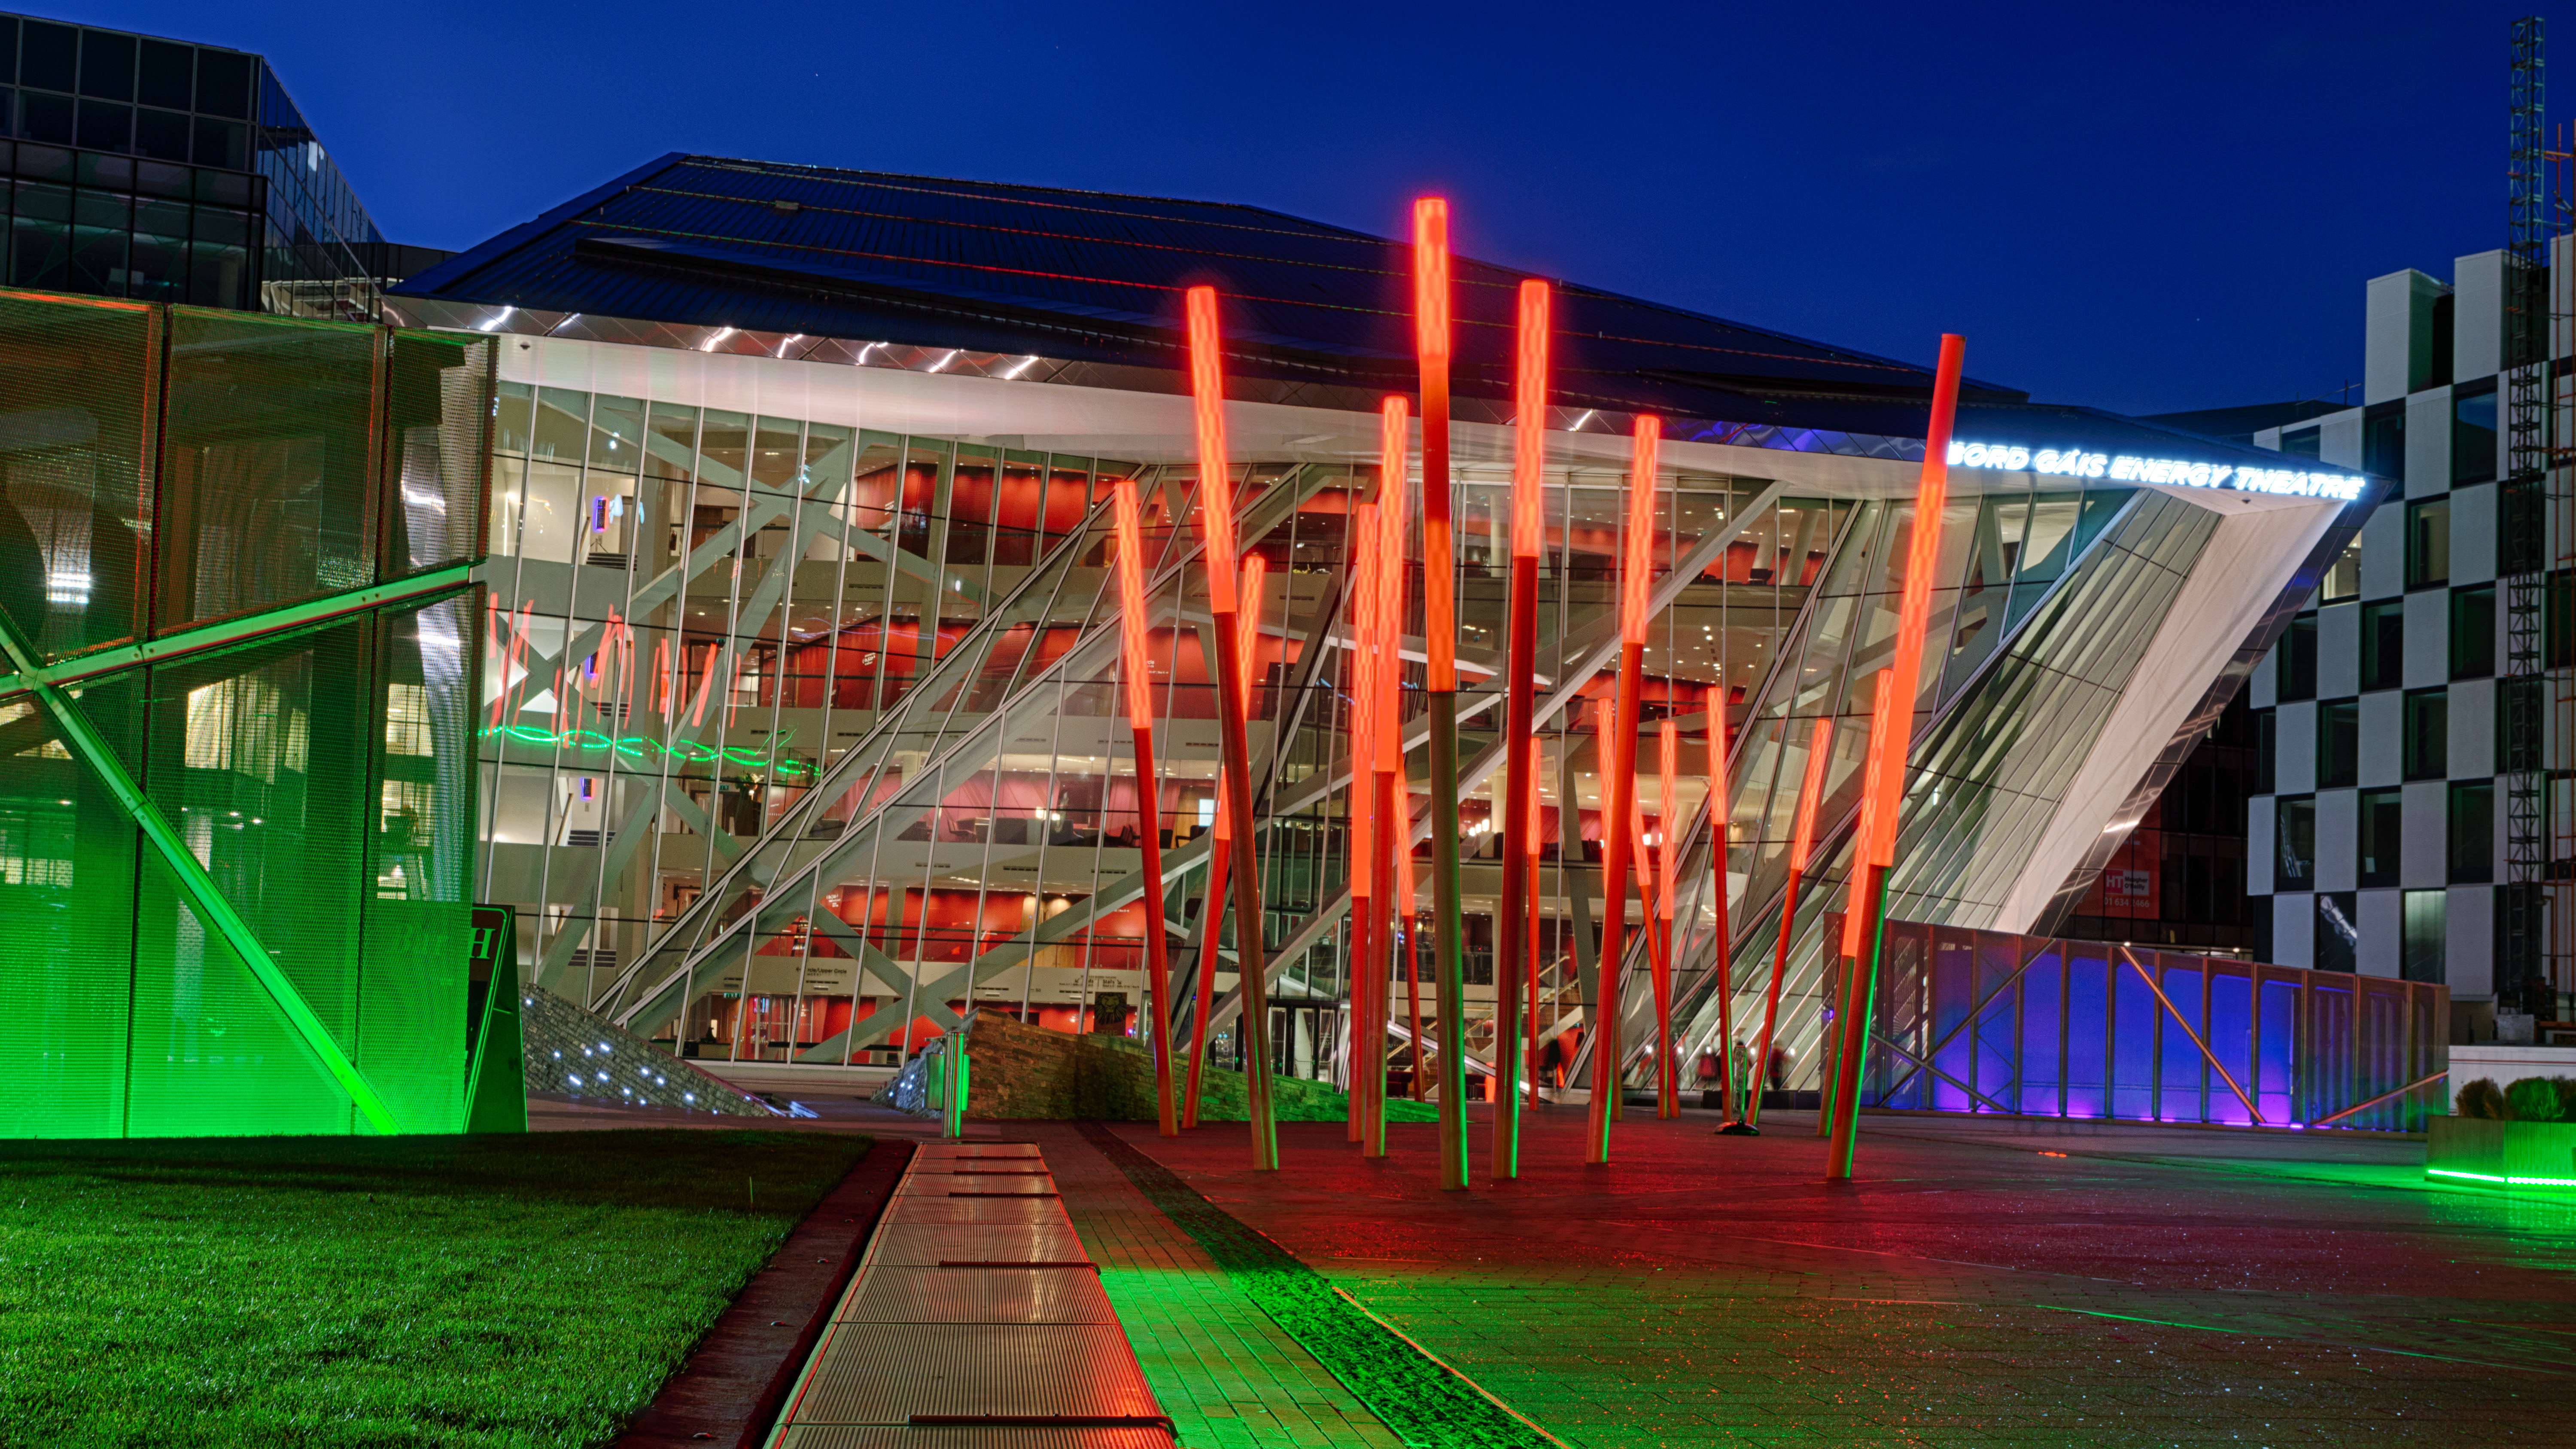 File:Bord Gáis Energy Theatre (8225077260).jpg - Wikimedia Commons